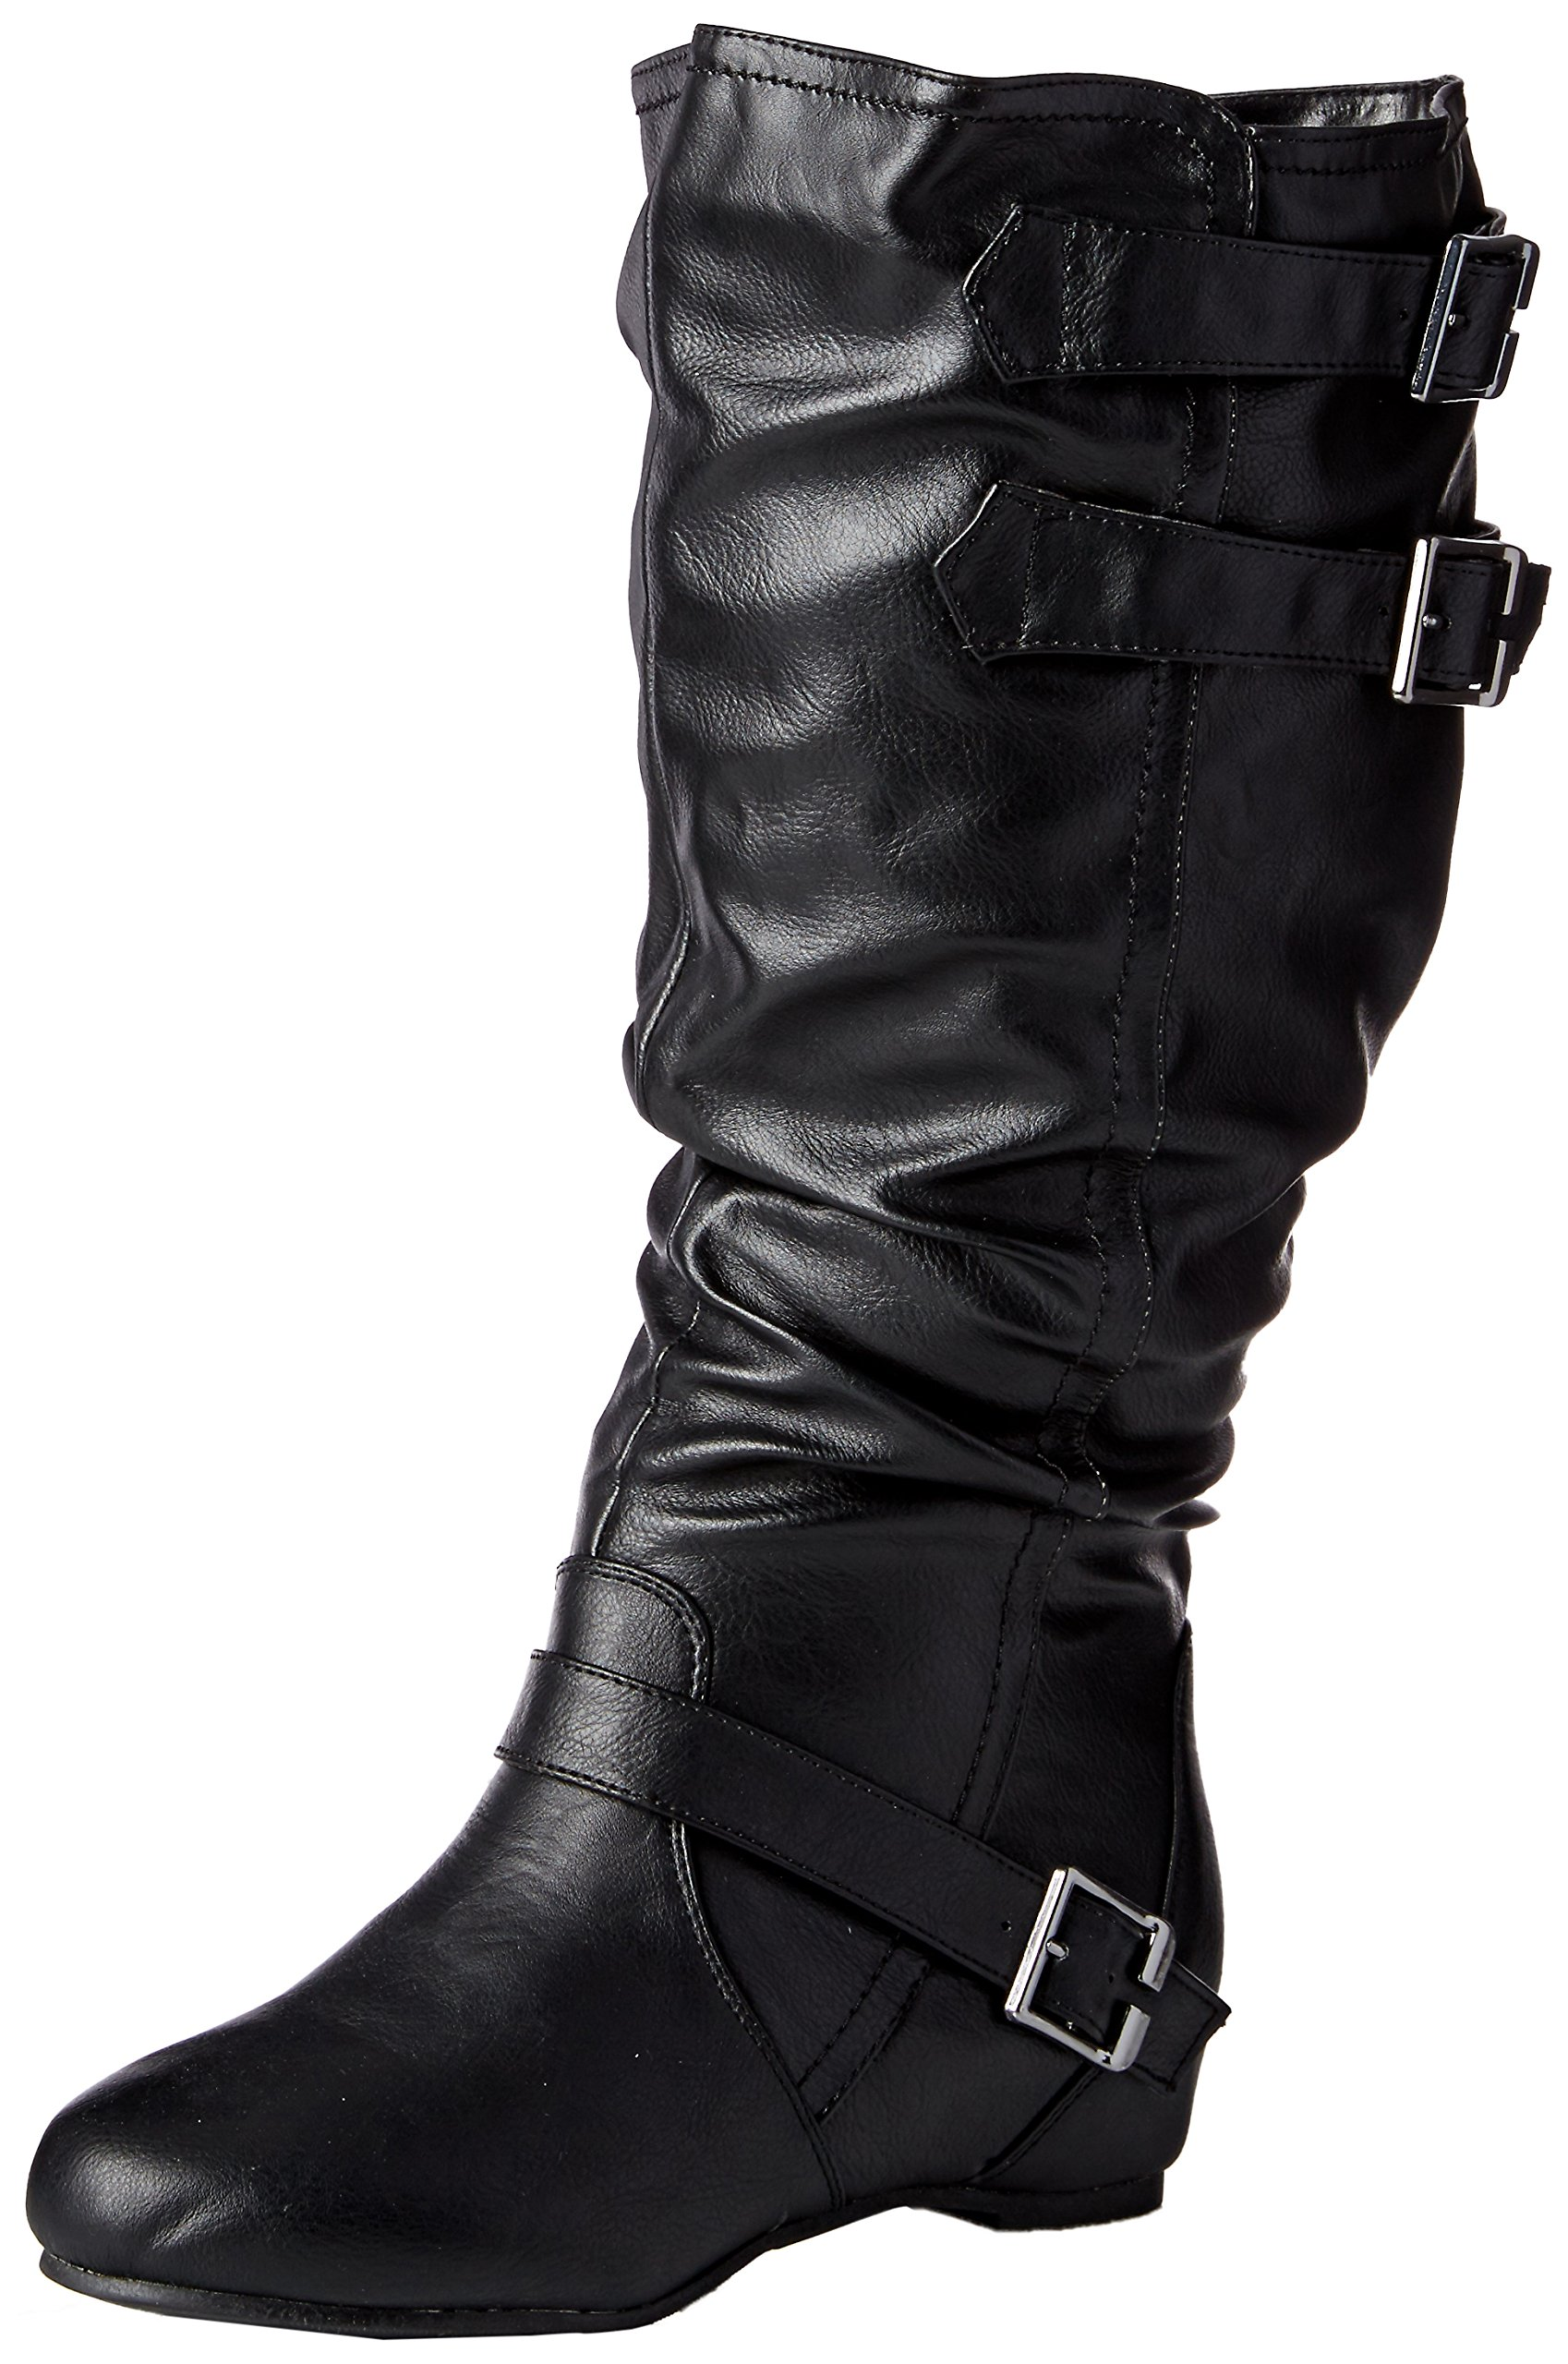 b80921c9c8c Journee Collection Womens Regular Sized and Wide-Calf Buckle Slouch Low- Wedge Boots Black, 10 Wide Calf US